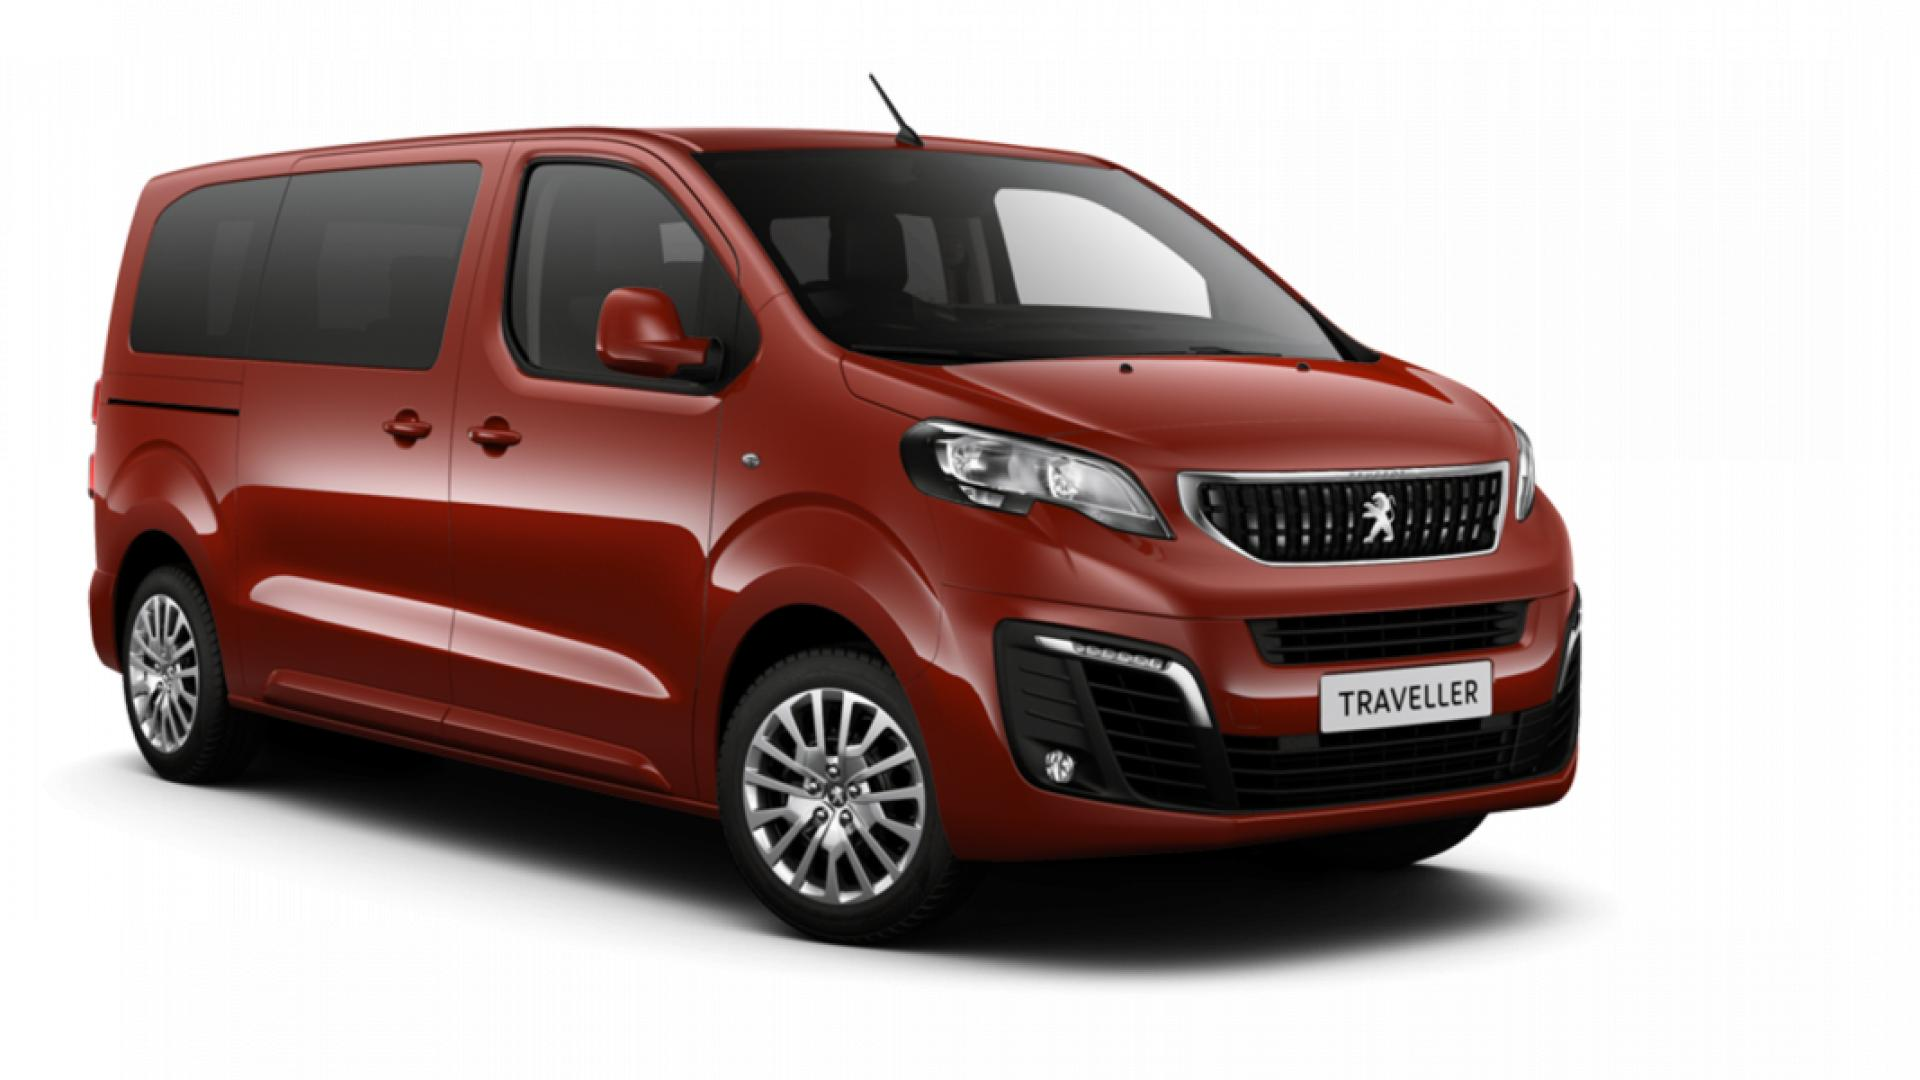 new peugeot traveller sw 2 0 bluehdi 150 active standard 8 seat 5dr robins and day. Black Bedroom Furniture Sets. Home Design Ideas